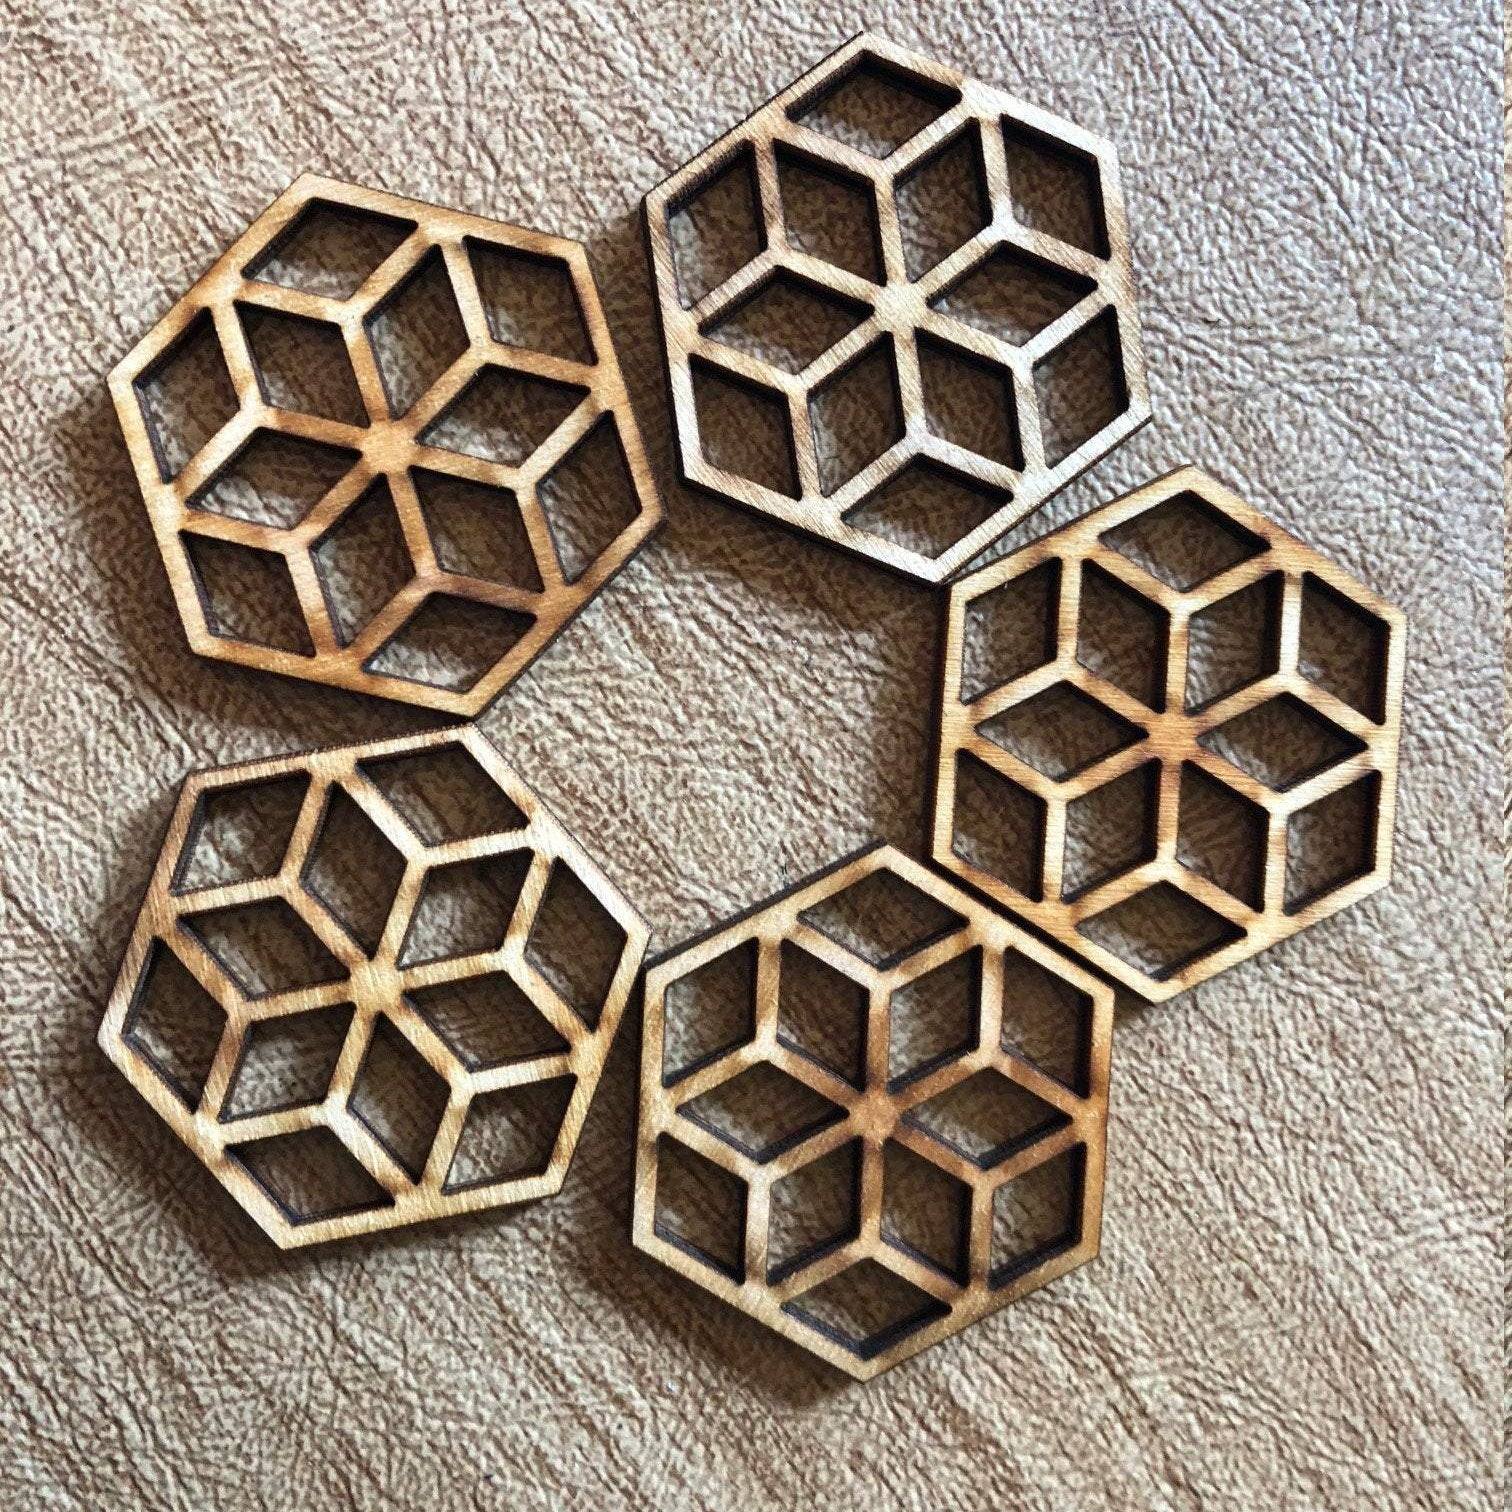 Hexagon Honeycomb Wooden Beads